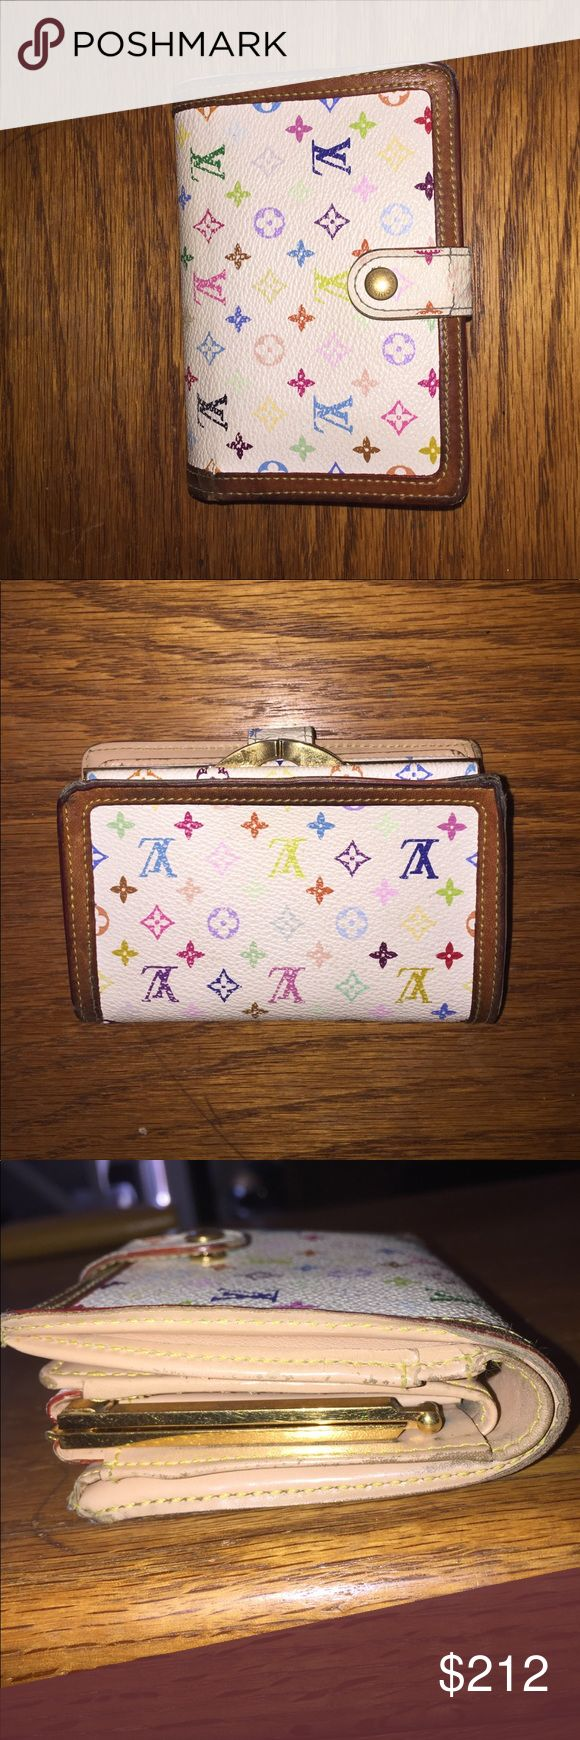 Authentic Louis Vuitton wallet Authentic Louis Vuitton bifold bill card snap wallet sighns of wear cover snap is cracked inside looks pretty good date code is TH0075 won't show up on pictures Louis Vuitton Bags Wallets